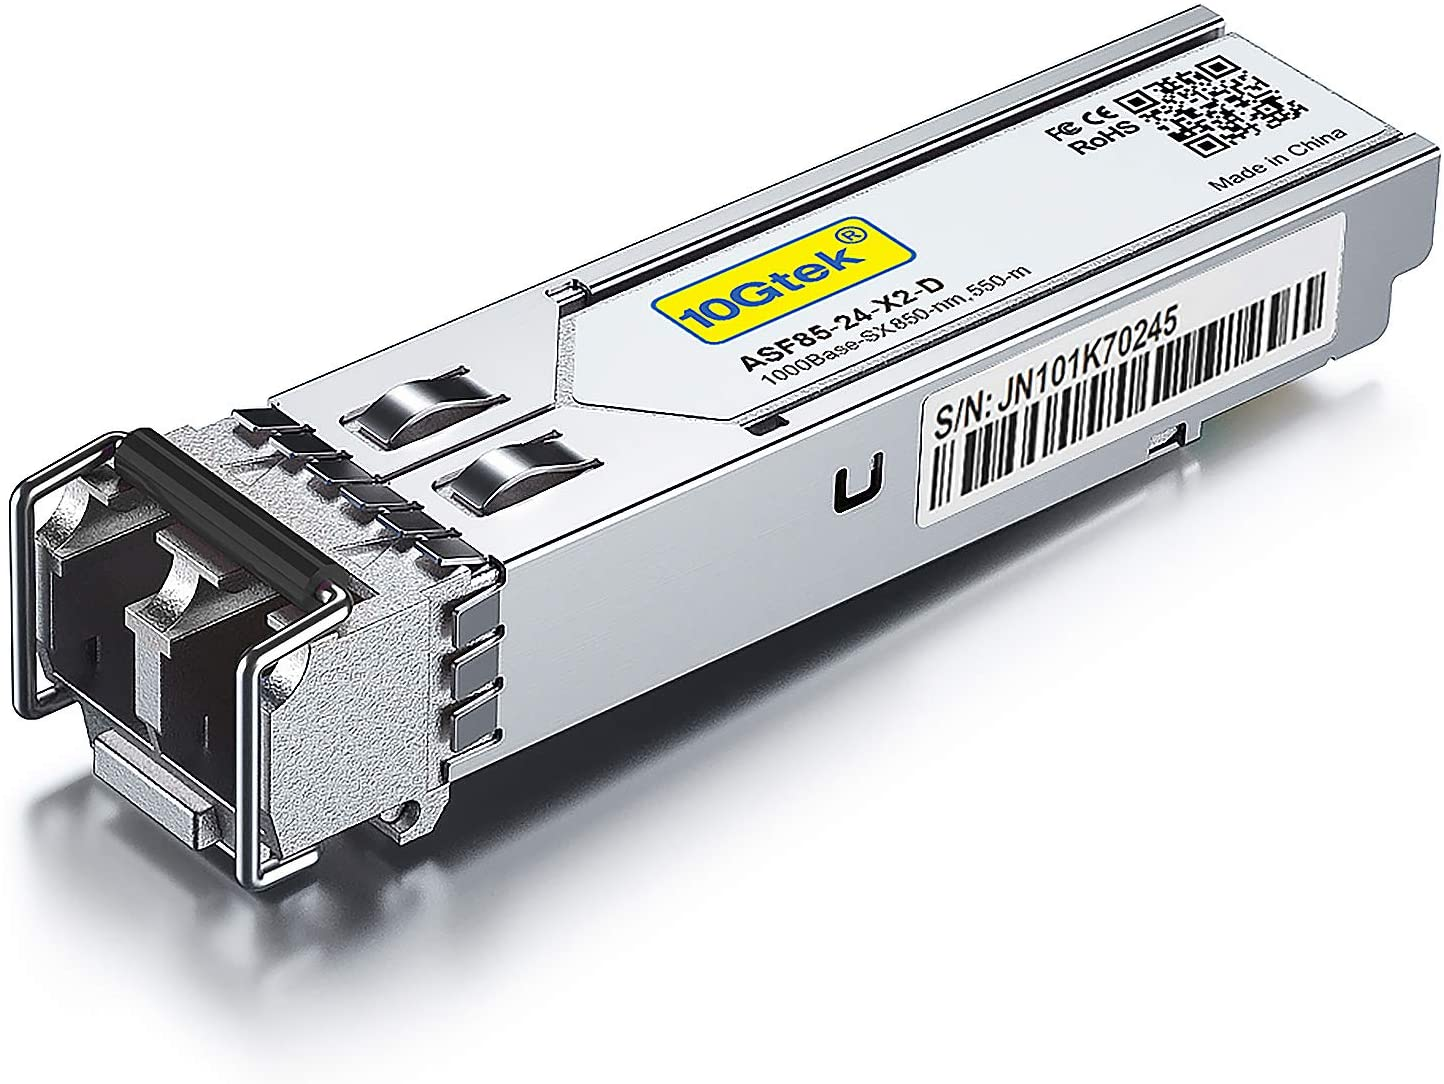 1.25G SFP 1000Base-SX 850nm Discount is also underway MMF up to 550 GL meters for low-pricing Cisco